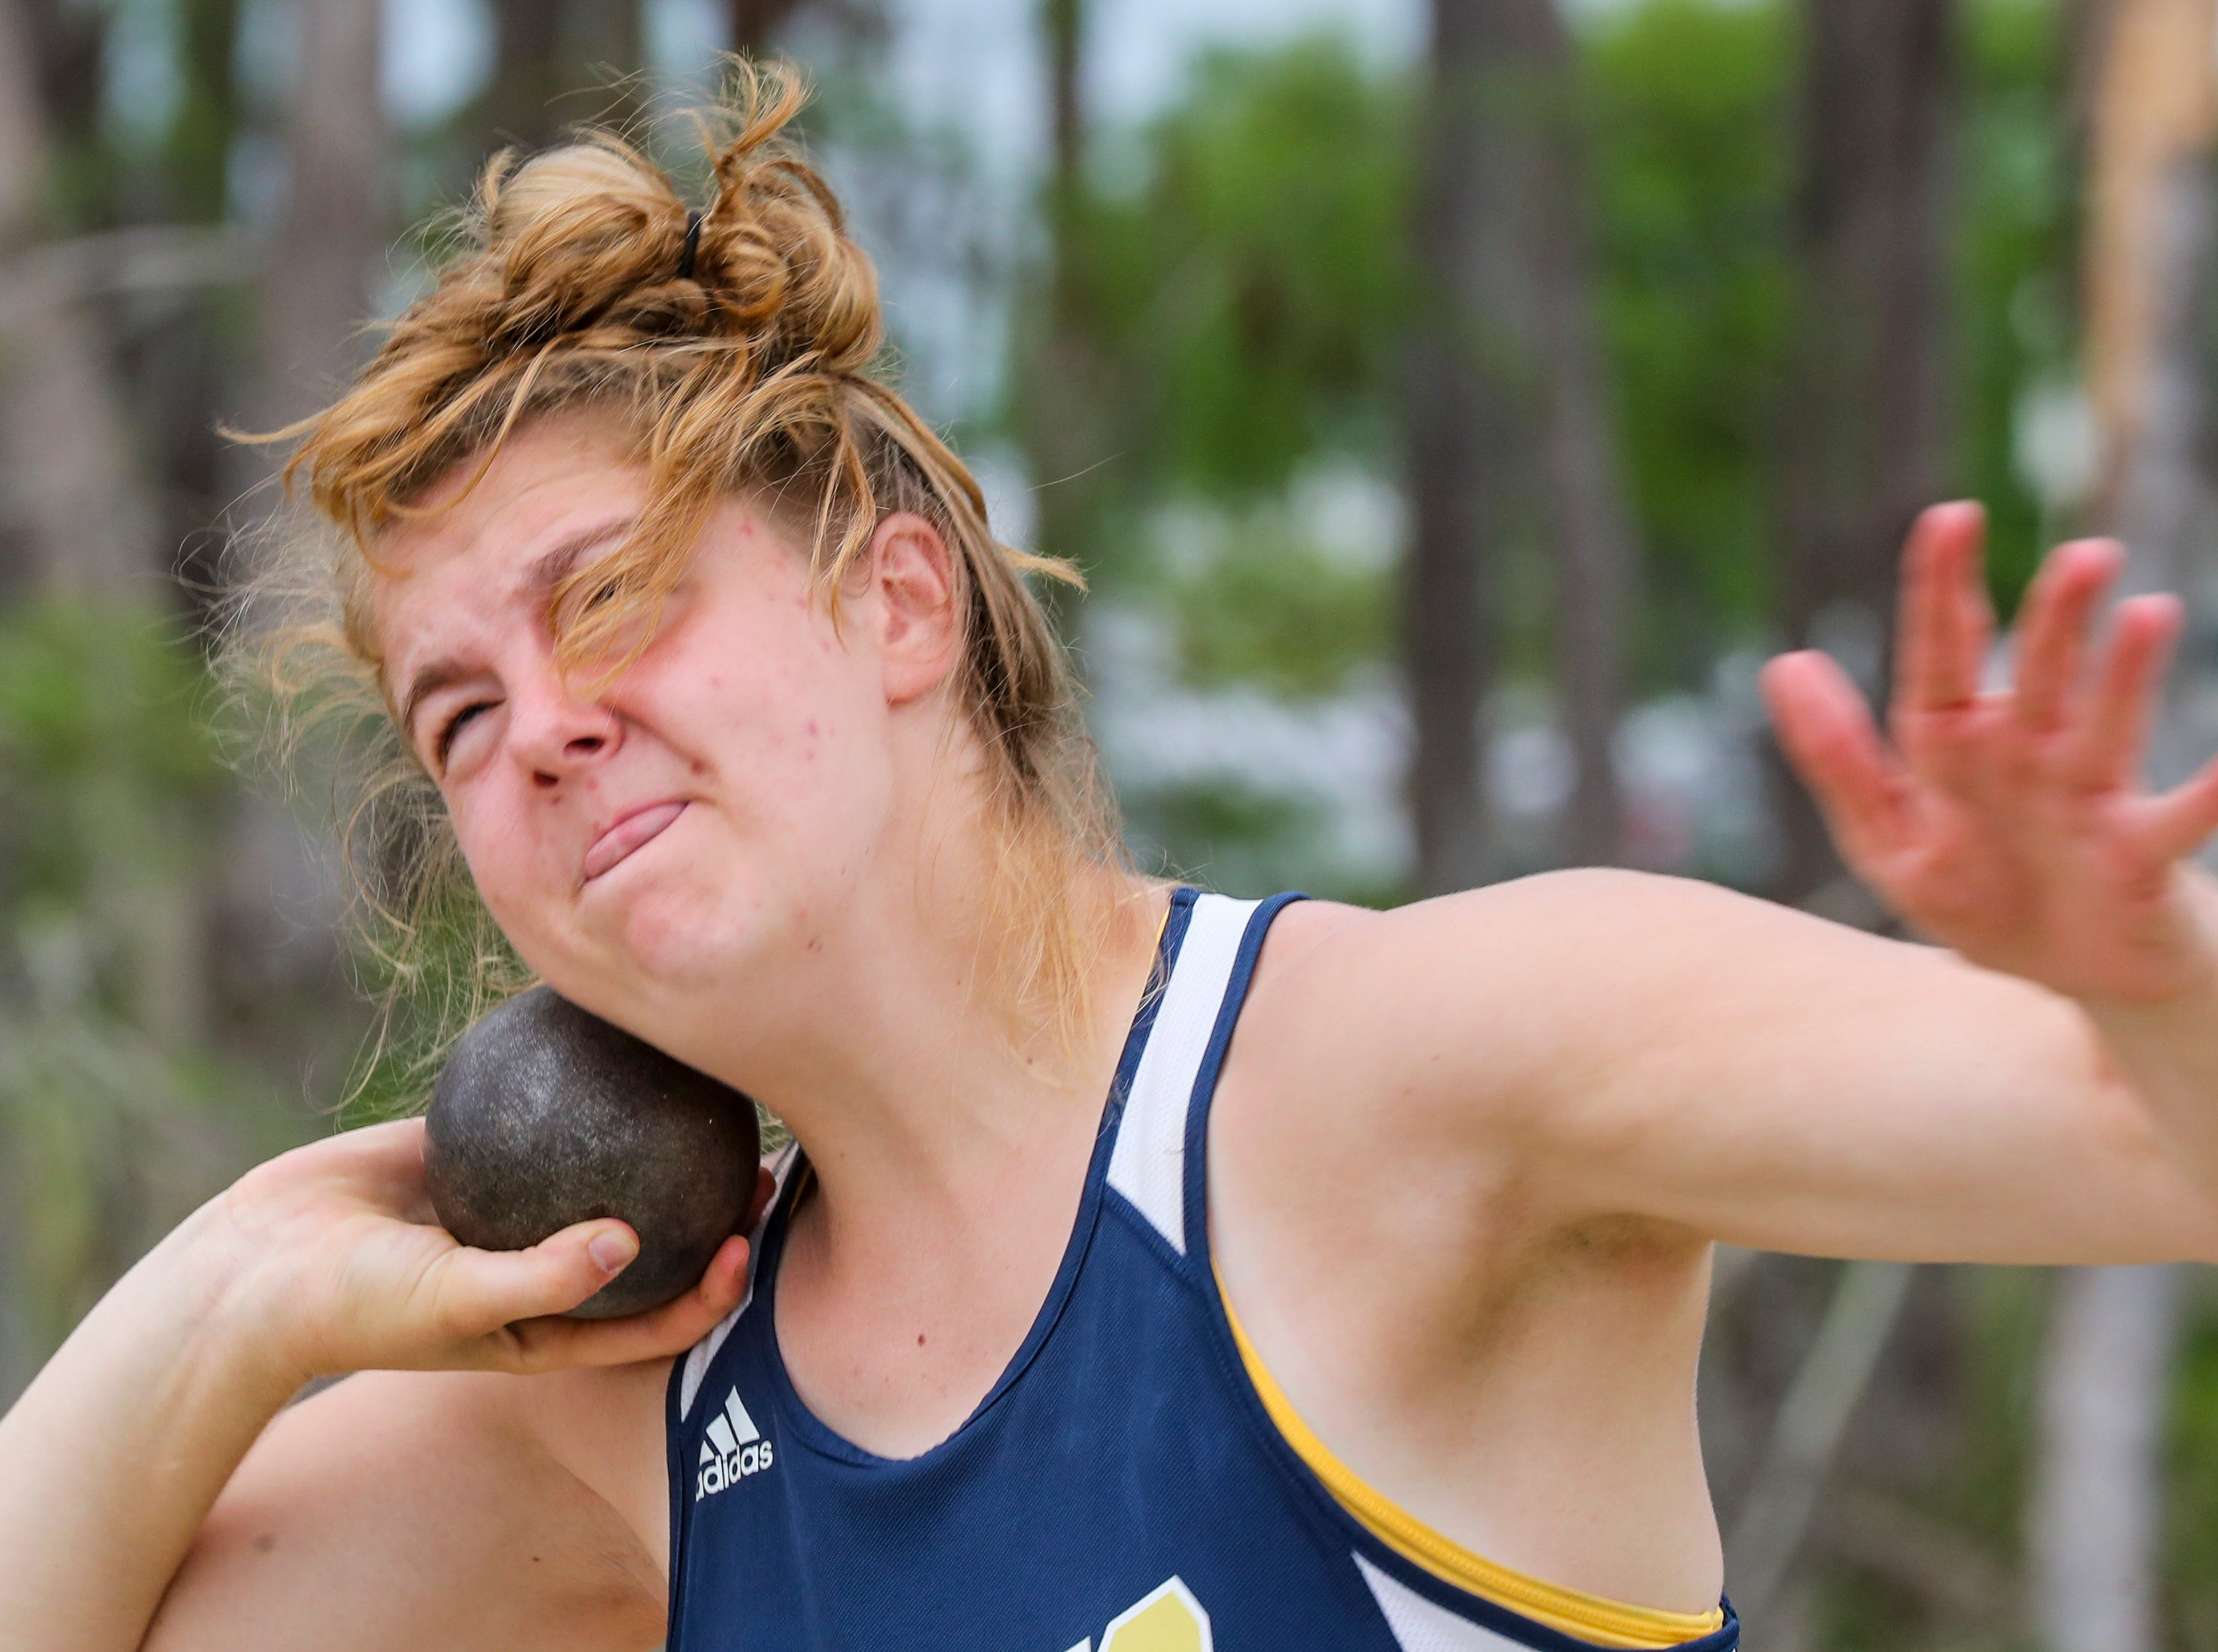 4th place, Rebekah Bergquist